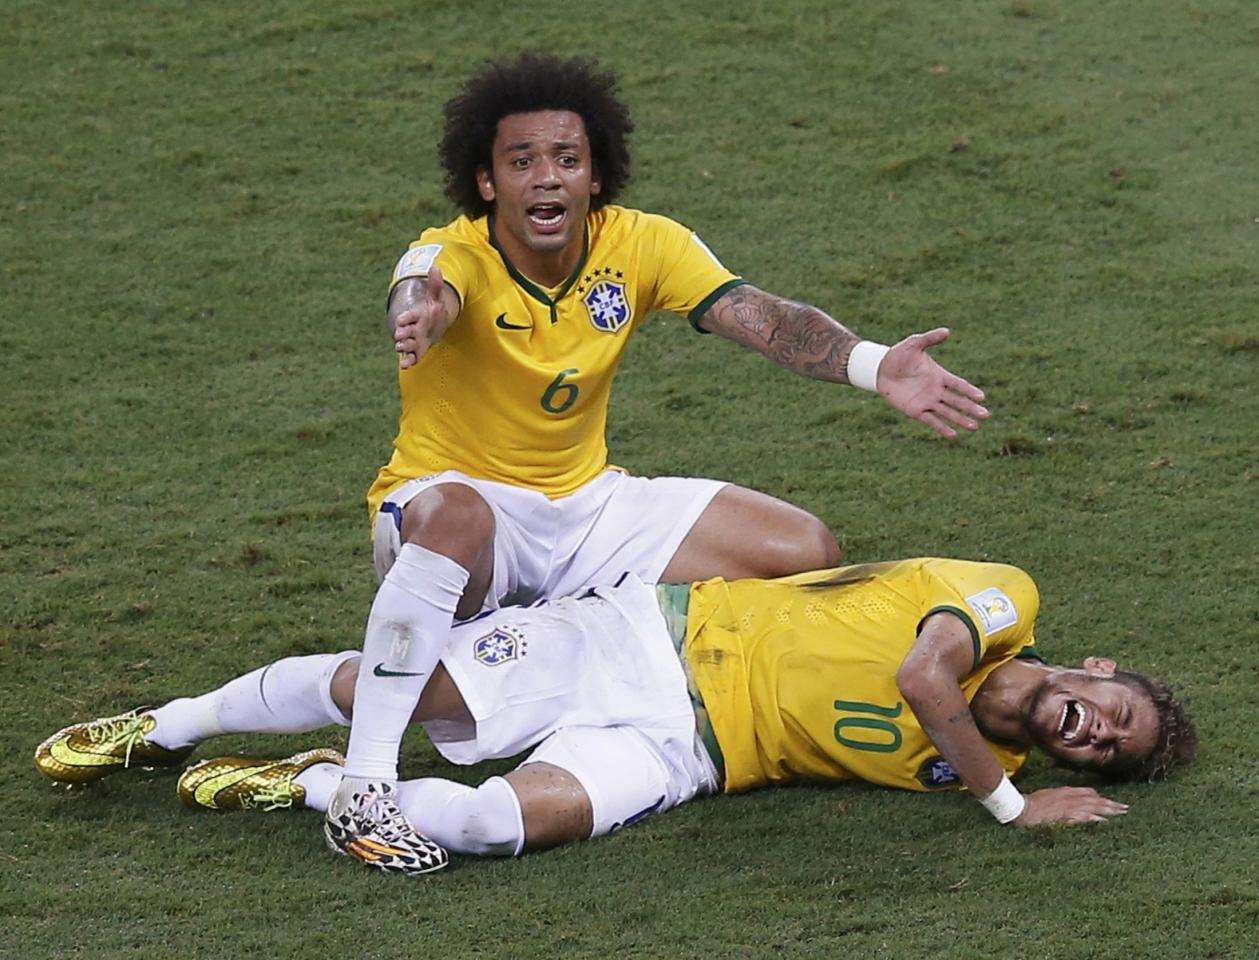 Brazil's Marcelo gestures over his injured teammate Neymar, who was fouled by Colombia's Camilo Zuniga (not pictured) during their 2014 World Cup quarter-finals at the Castelao arena in Fortaleza July 4, 2014. REUTERS/Leonhard Foeger (BRAZIL - Tags: SOCCER SPORT WORLD CUP TPX IMAGES OF THE DAY) TOPCUP